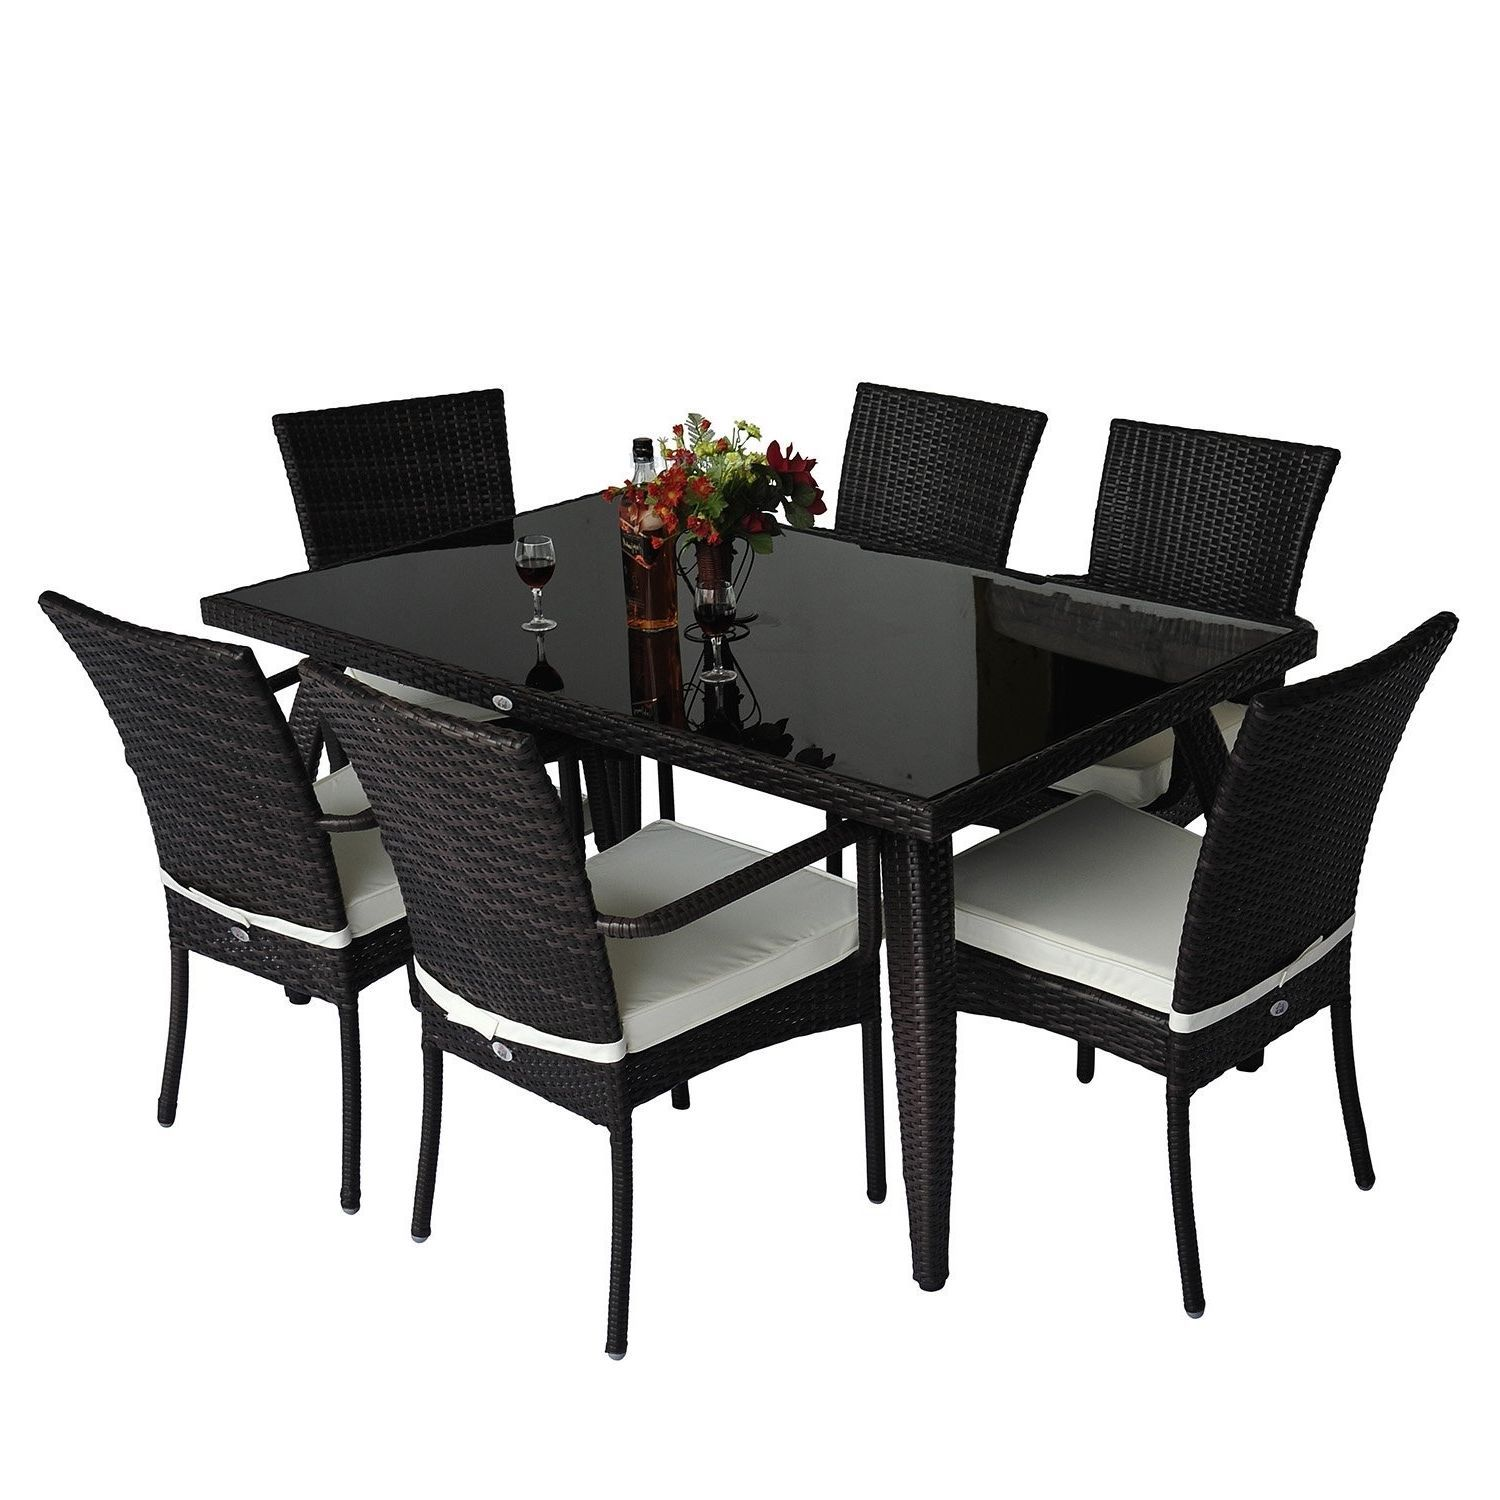 Rattan Garden Dining Set 7pcs Luxury Patio Furniture Rectangular Table 6 Chairs image 1